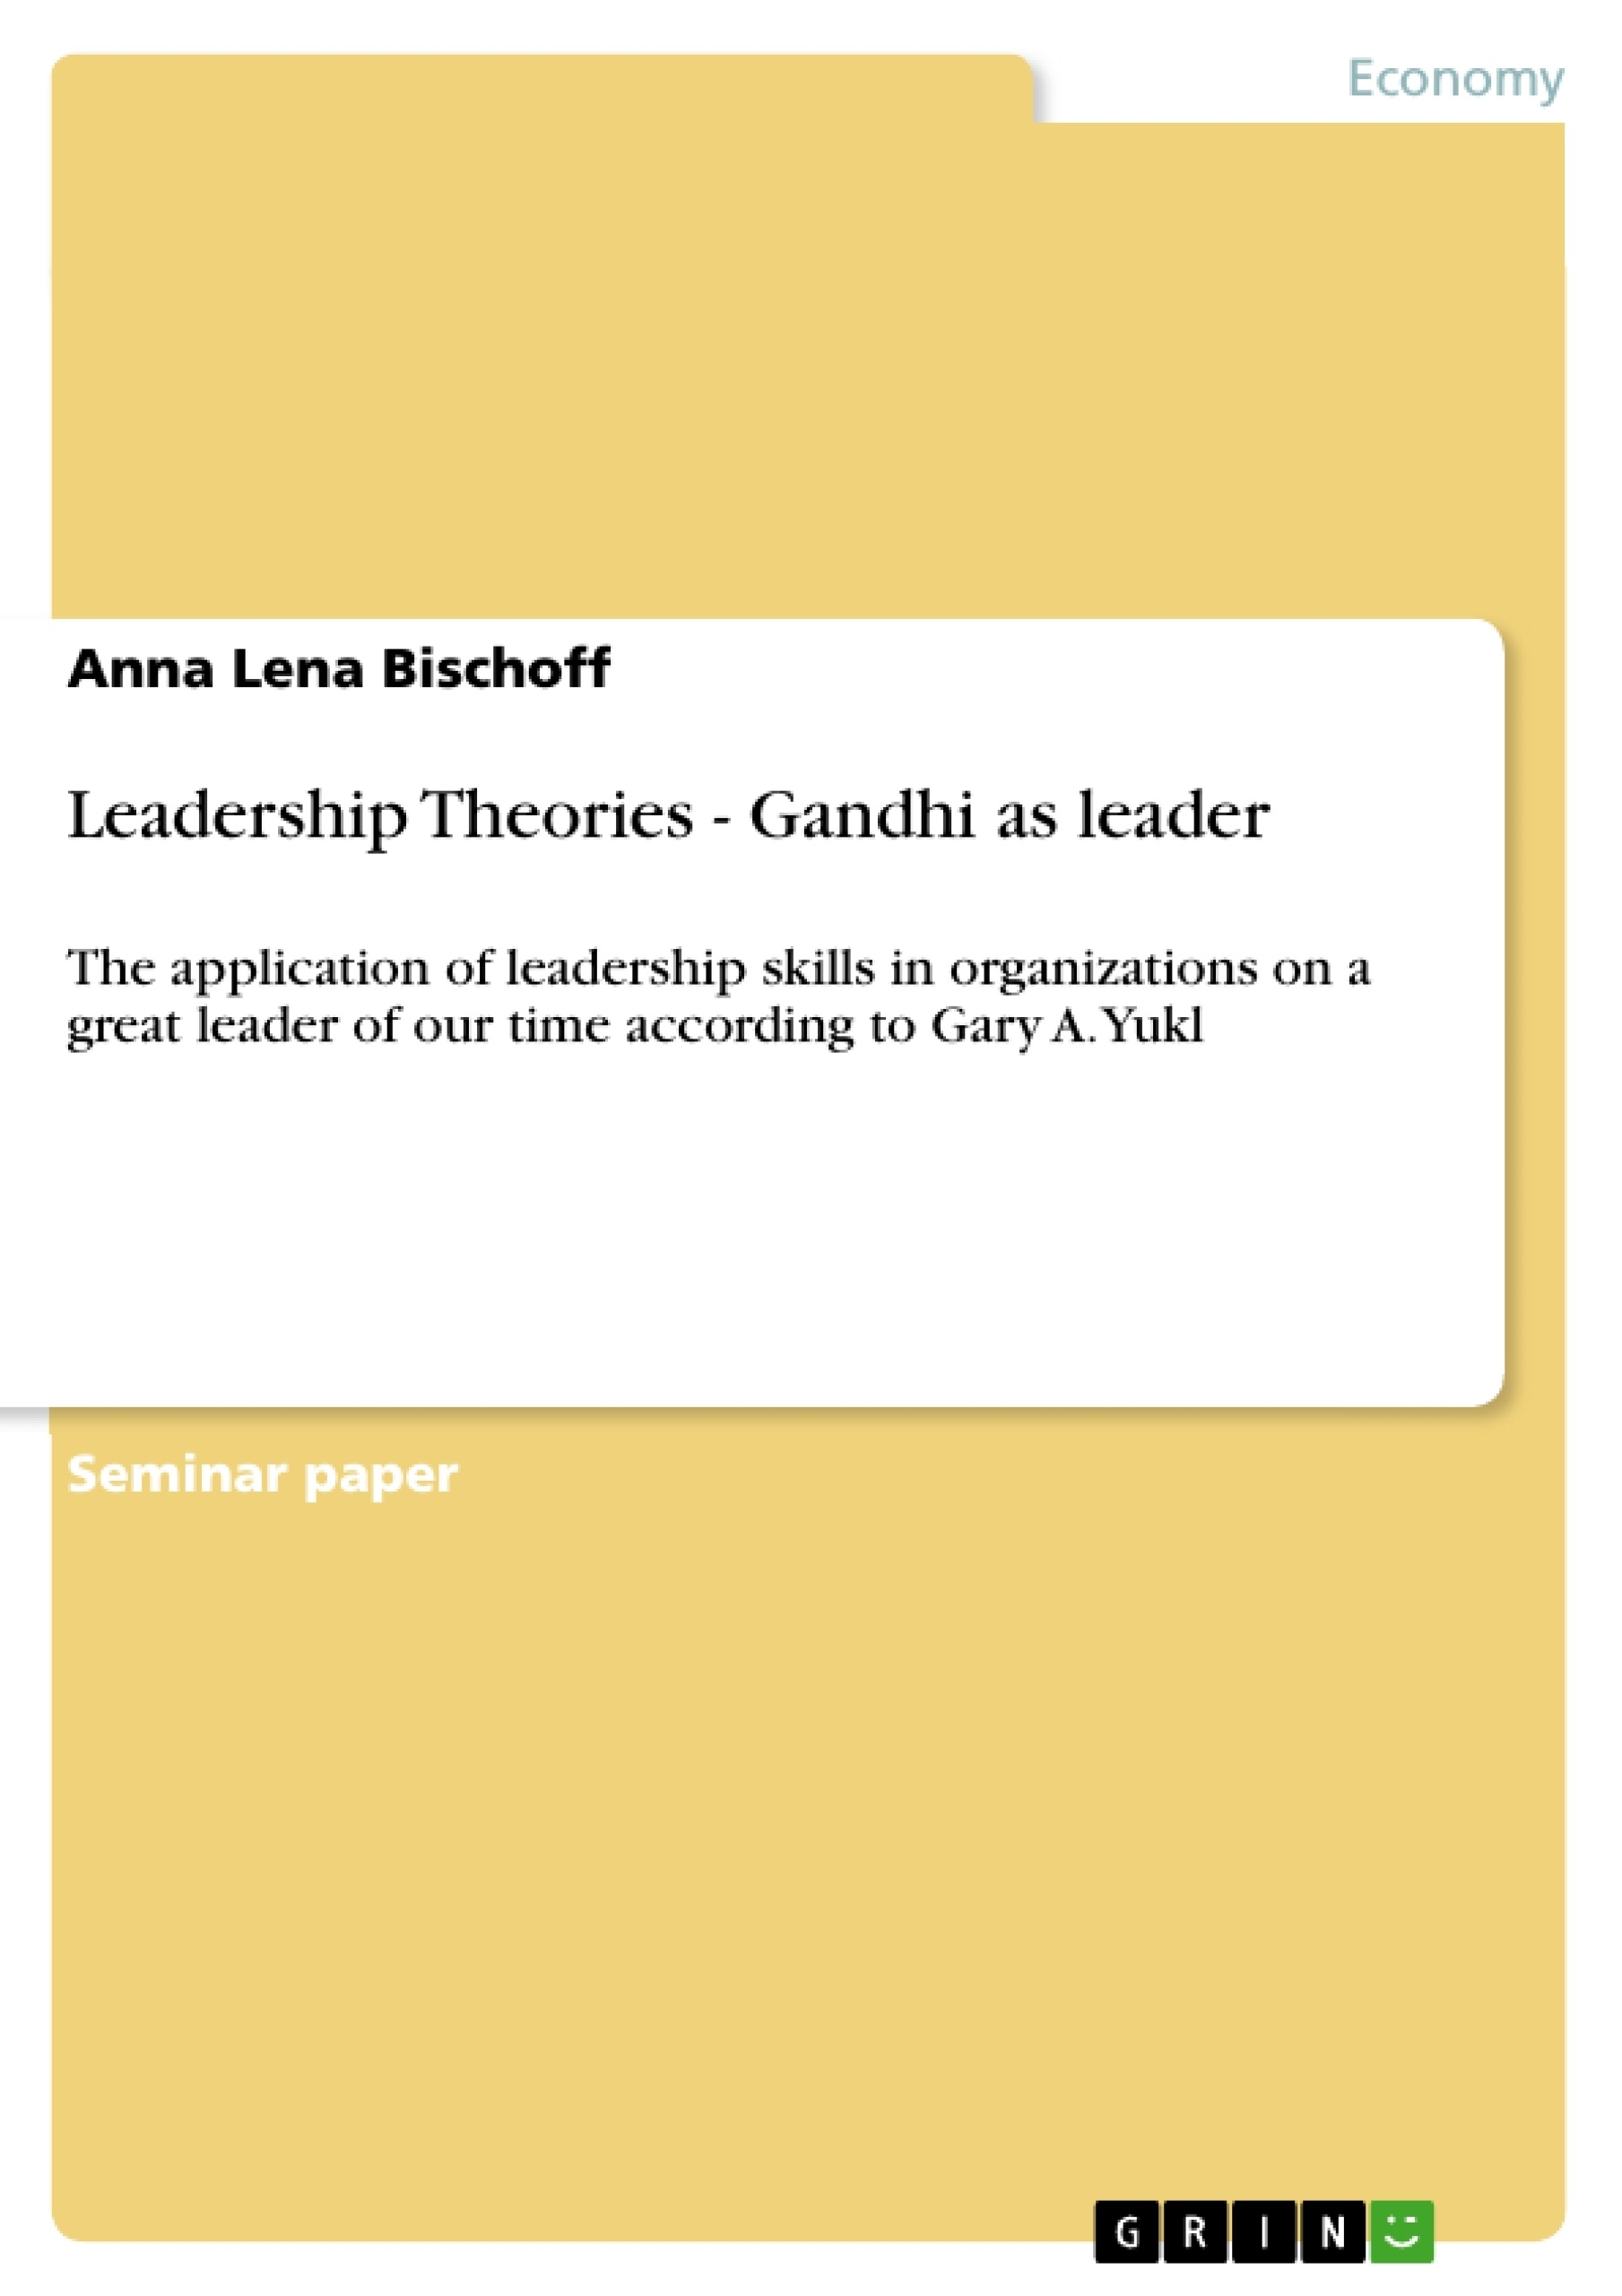 leadership theories gandhi as leader publish your master s  upload your own papers earn money and win an iphone x